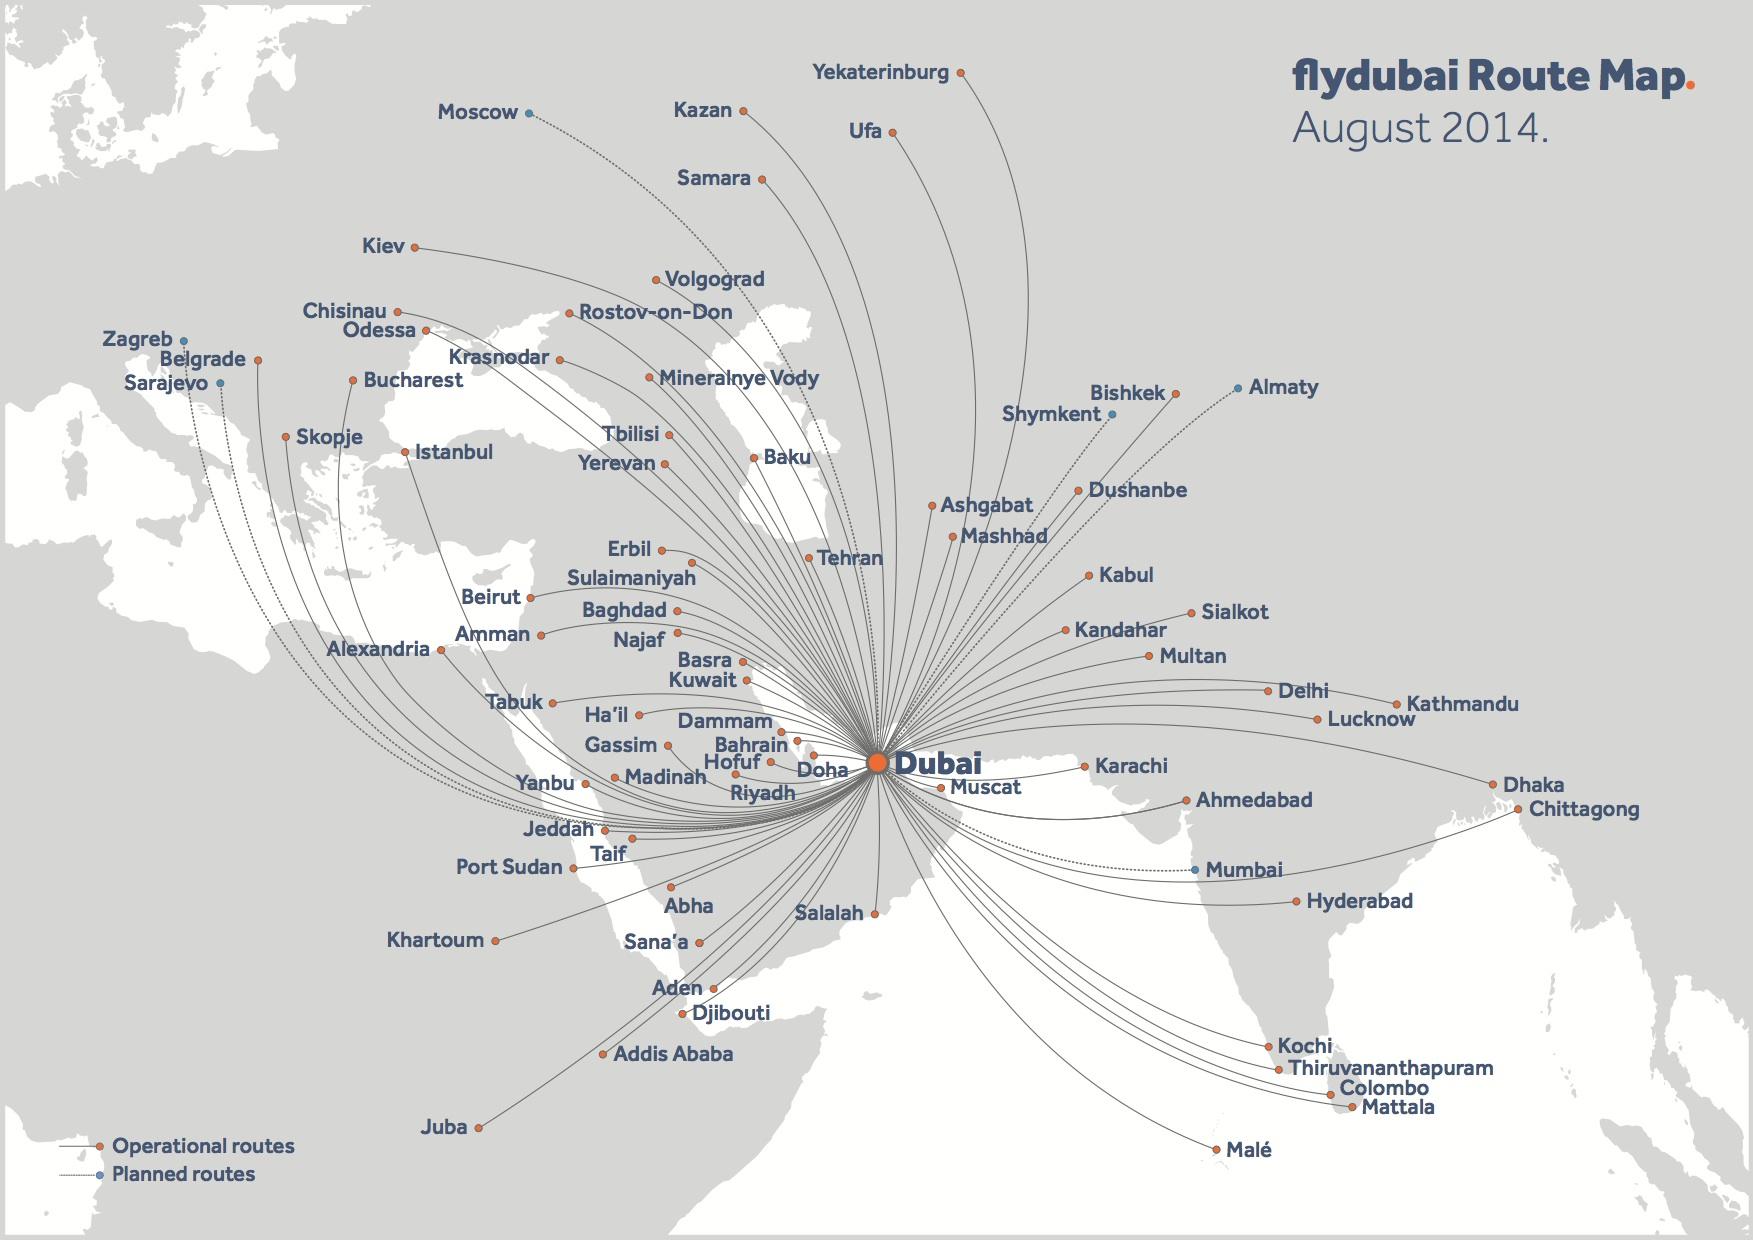 Flydubai adds three more routes reaches 80 destinations world expanded route map flydubai 82014 route map publicscrutiny Choice Image